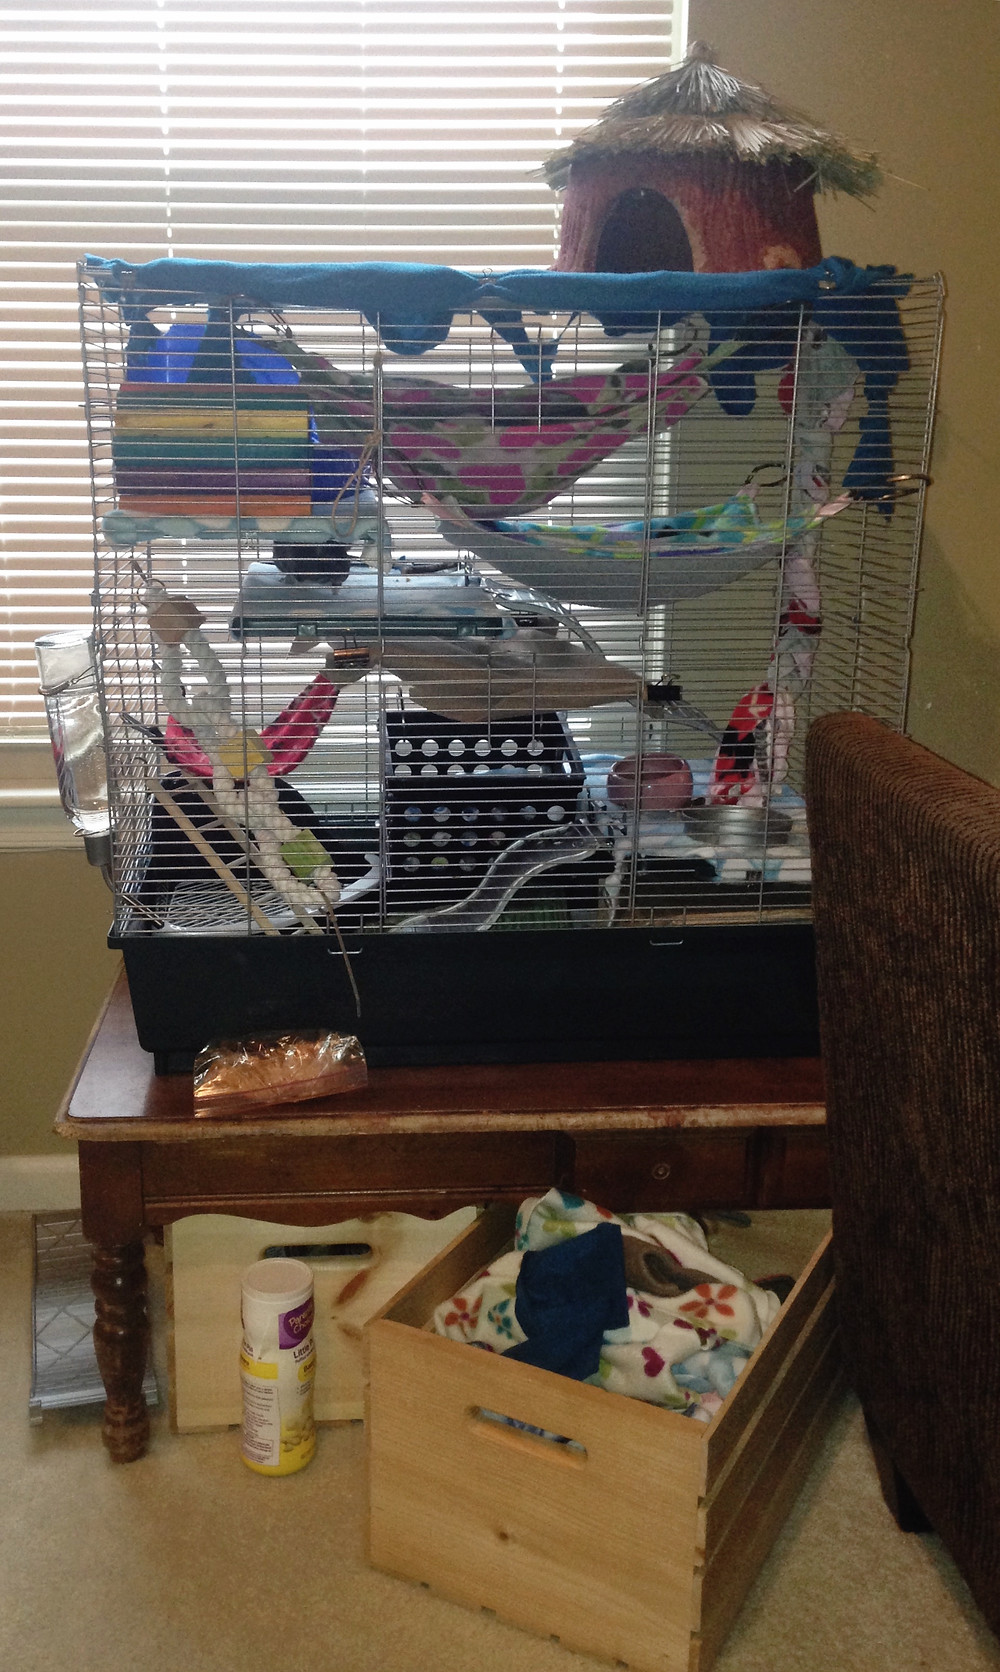 My older pet rats cage was a serious mess! This is the Kaytee Multi-Level Small Animal Exotics Cage